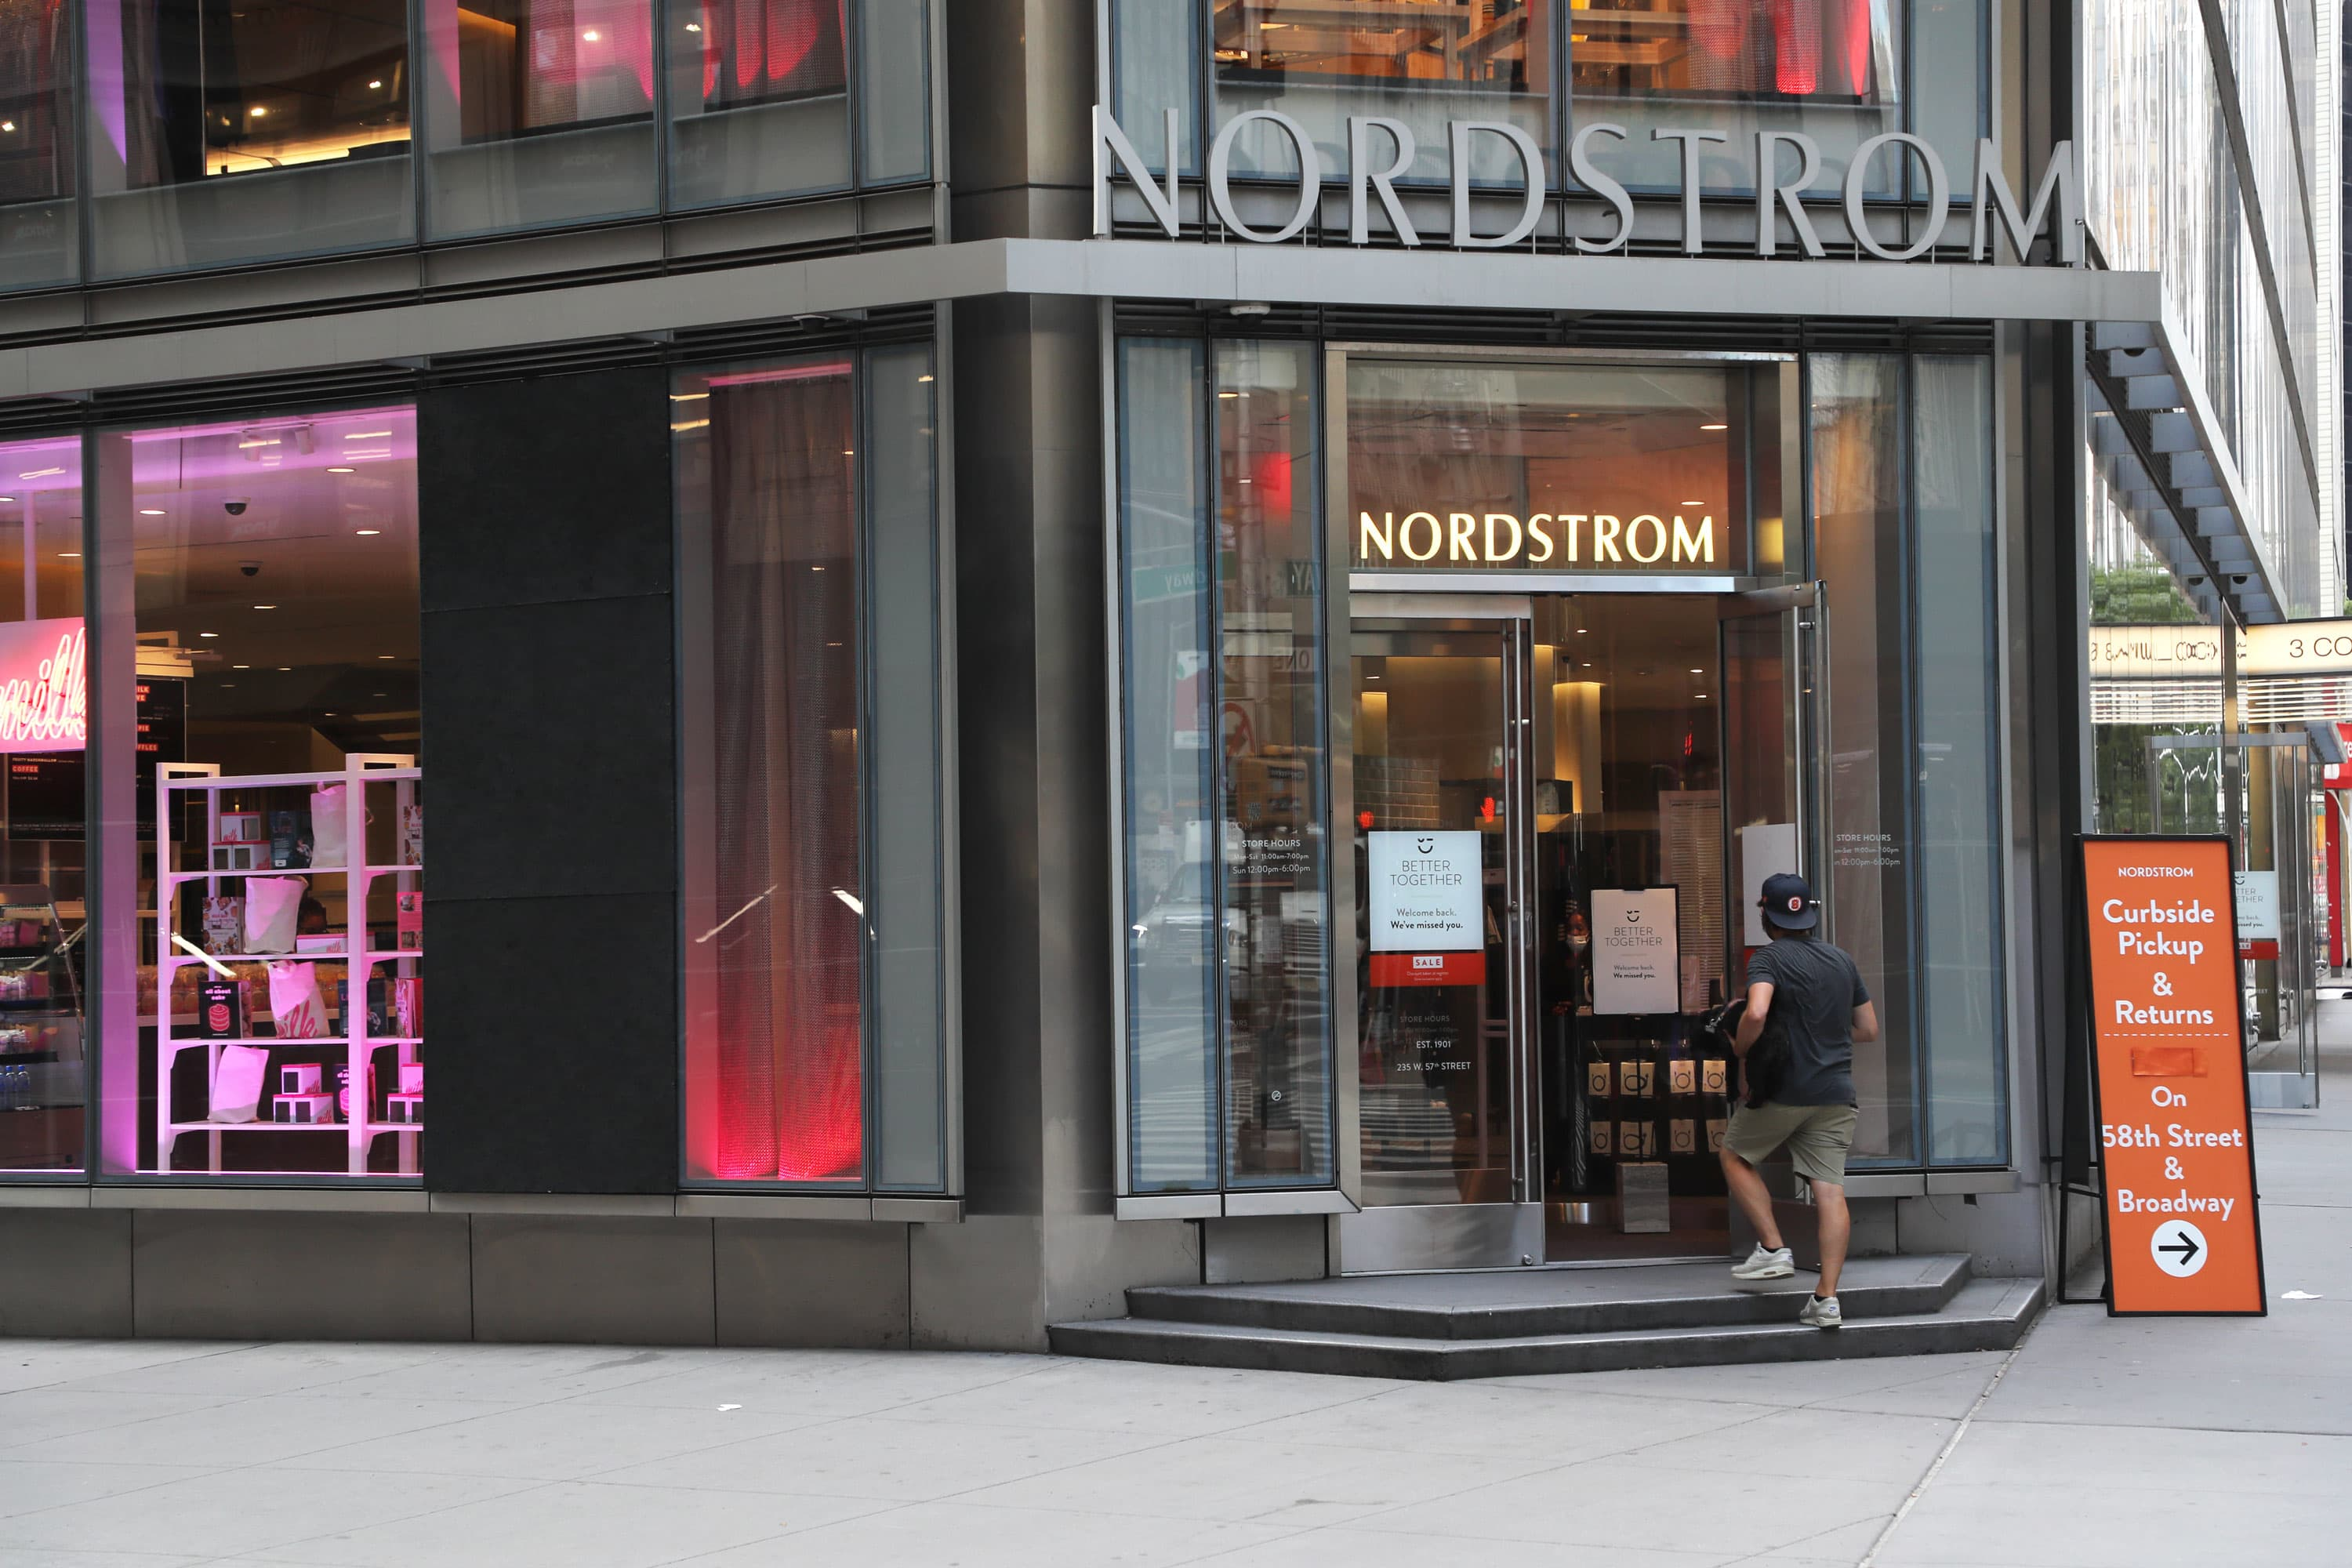 Fashion brands see sales rebounding—eventually. Europe's murky outlook could snag growth - CNBC